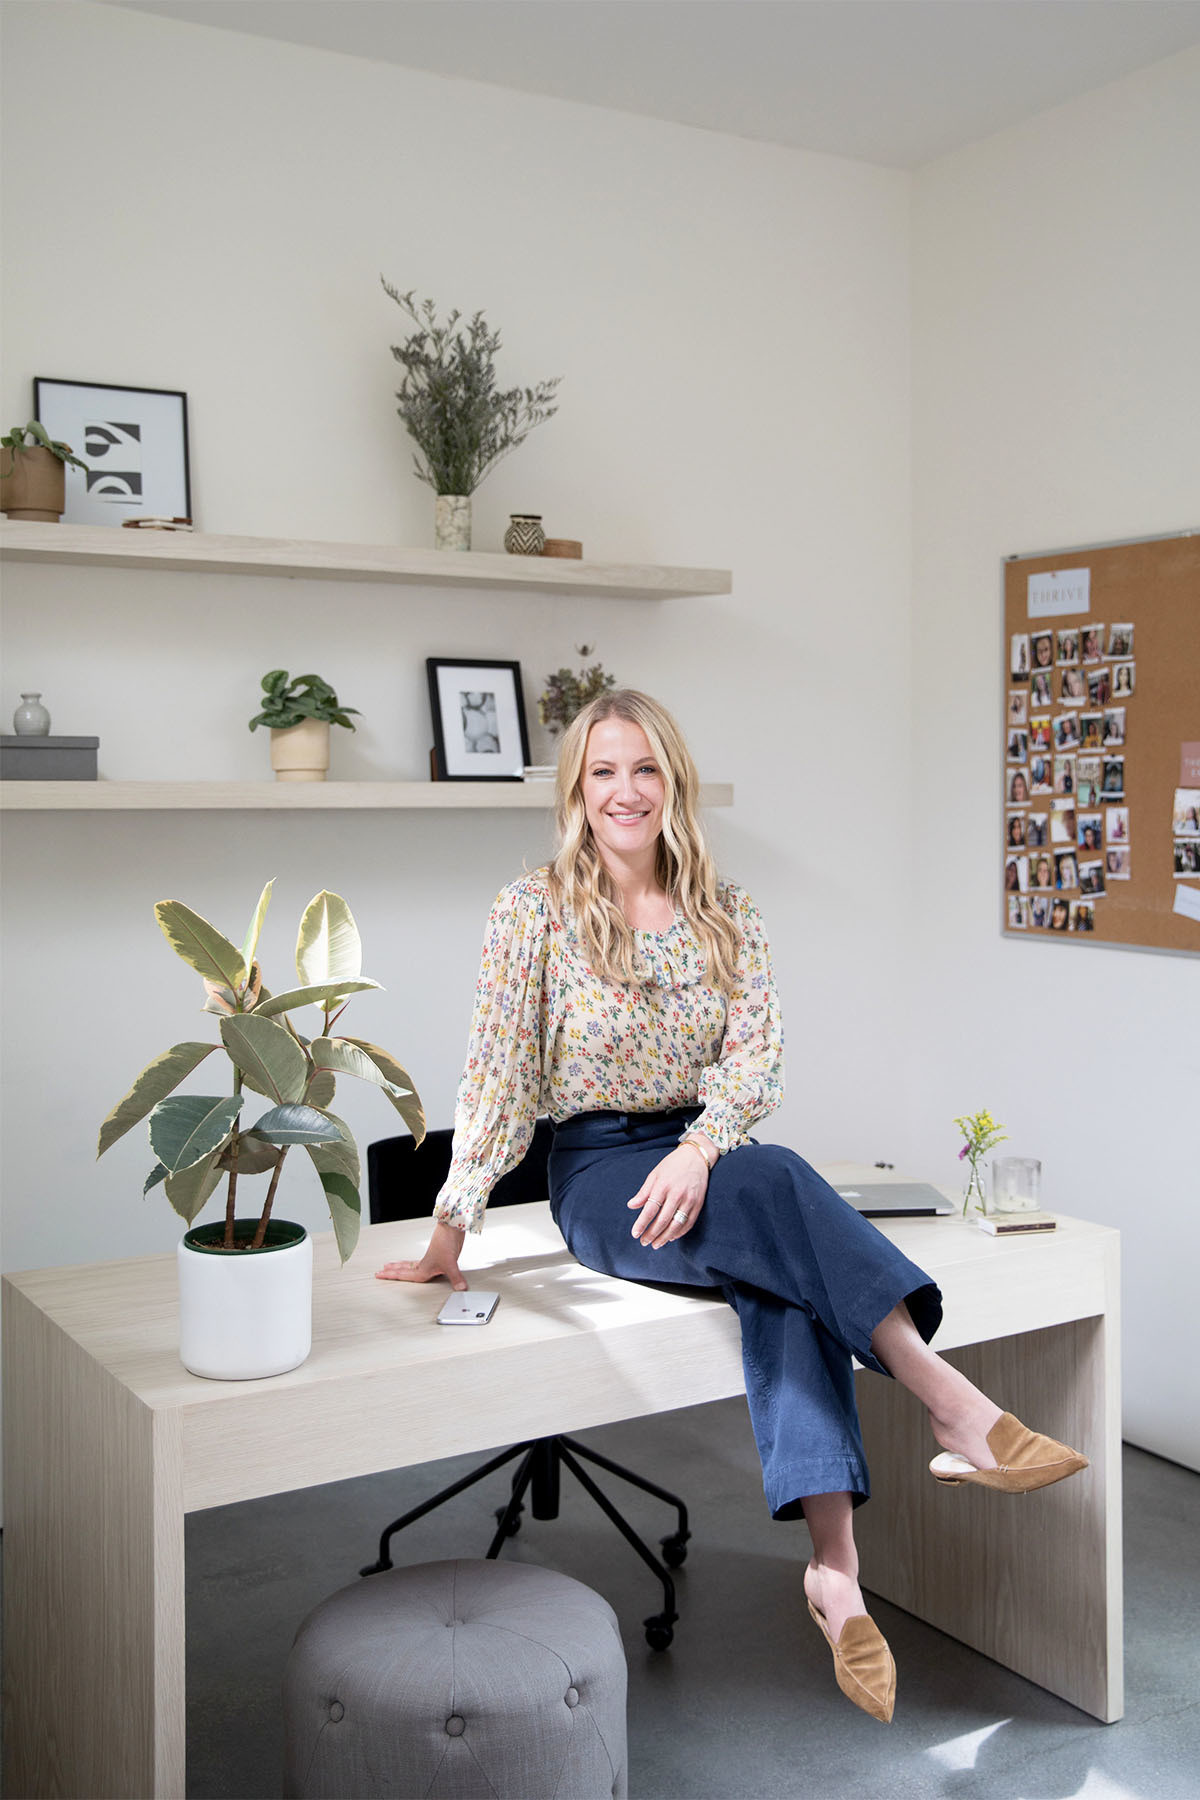 Stevens, who runs her business from home, ensures her office space is both calming and efficient. Sara Karkenny Desk | Sara Karkenny Custom Shelving | CB2 Desk Chair | West Elm Assorted Frames | Sanso Potted Plants | Sara Karkenny Ceramics.